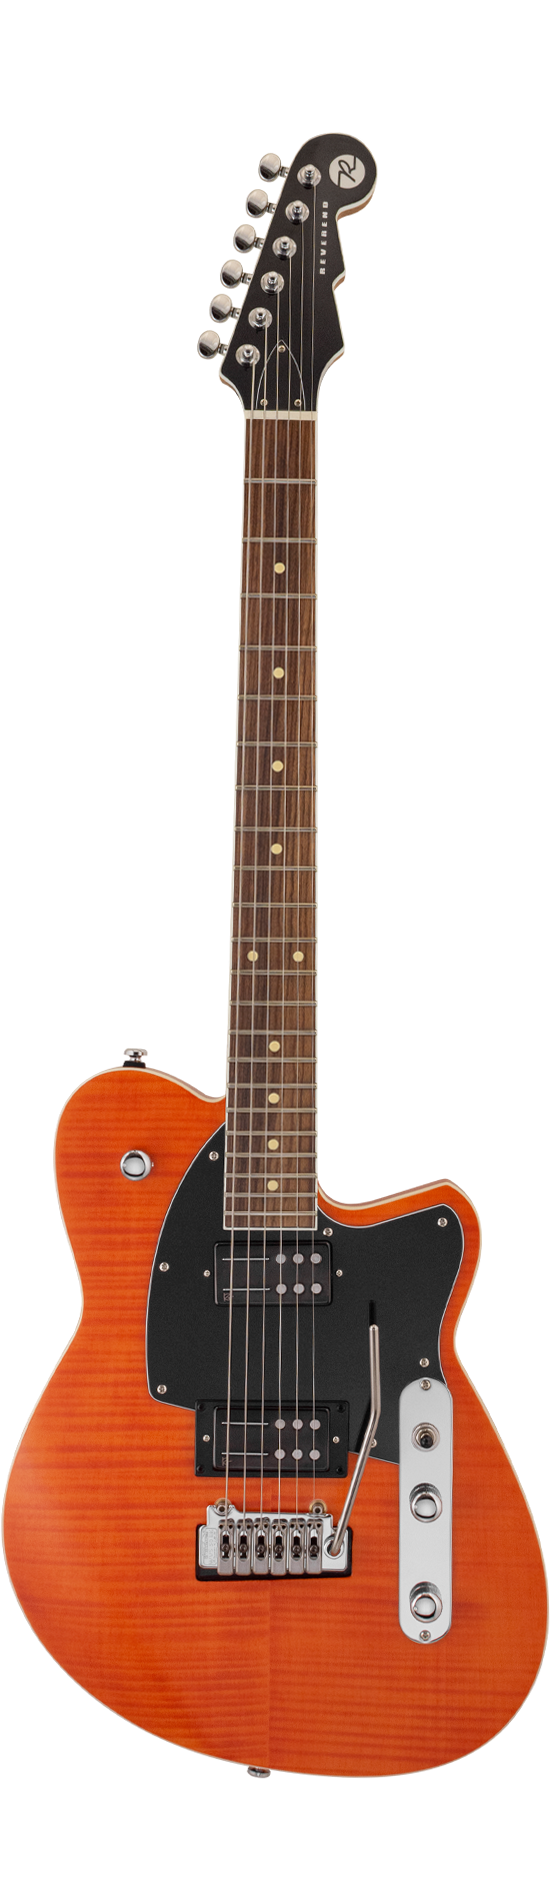 Reverend Guitars Reeves Gabrels